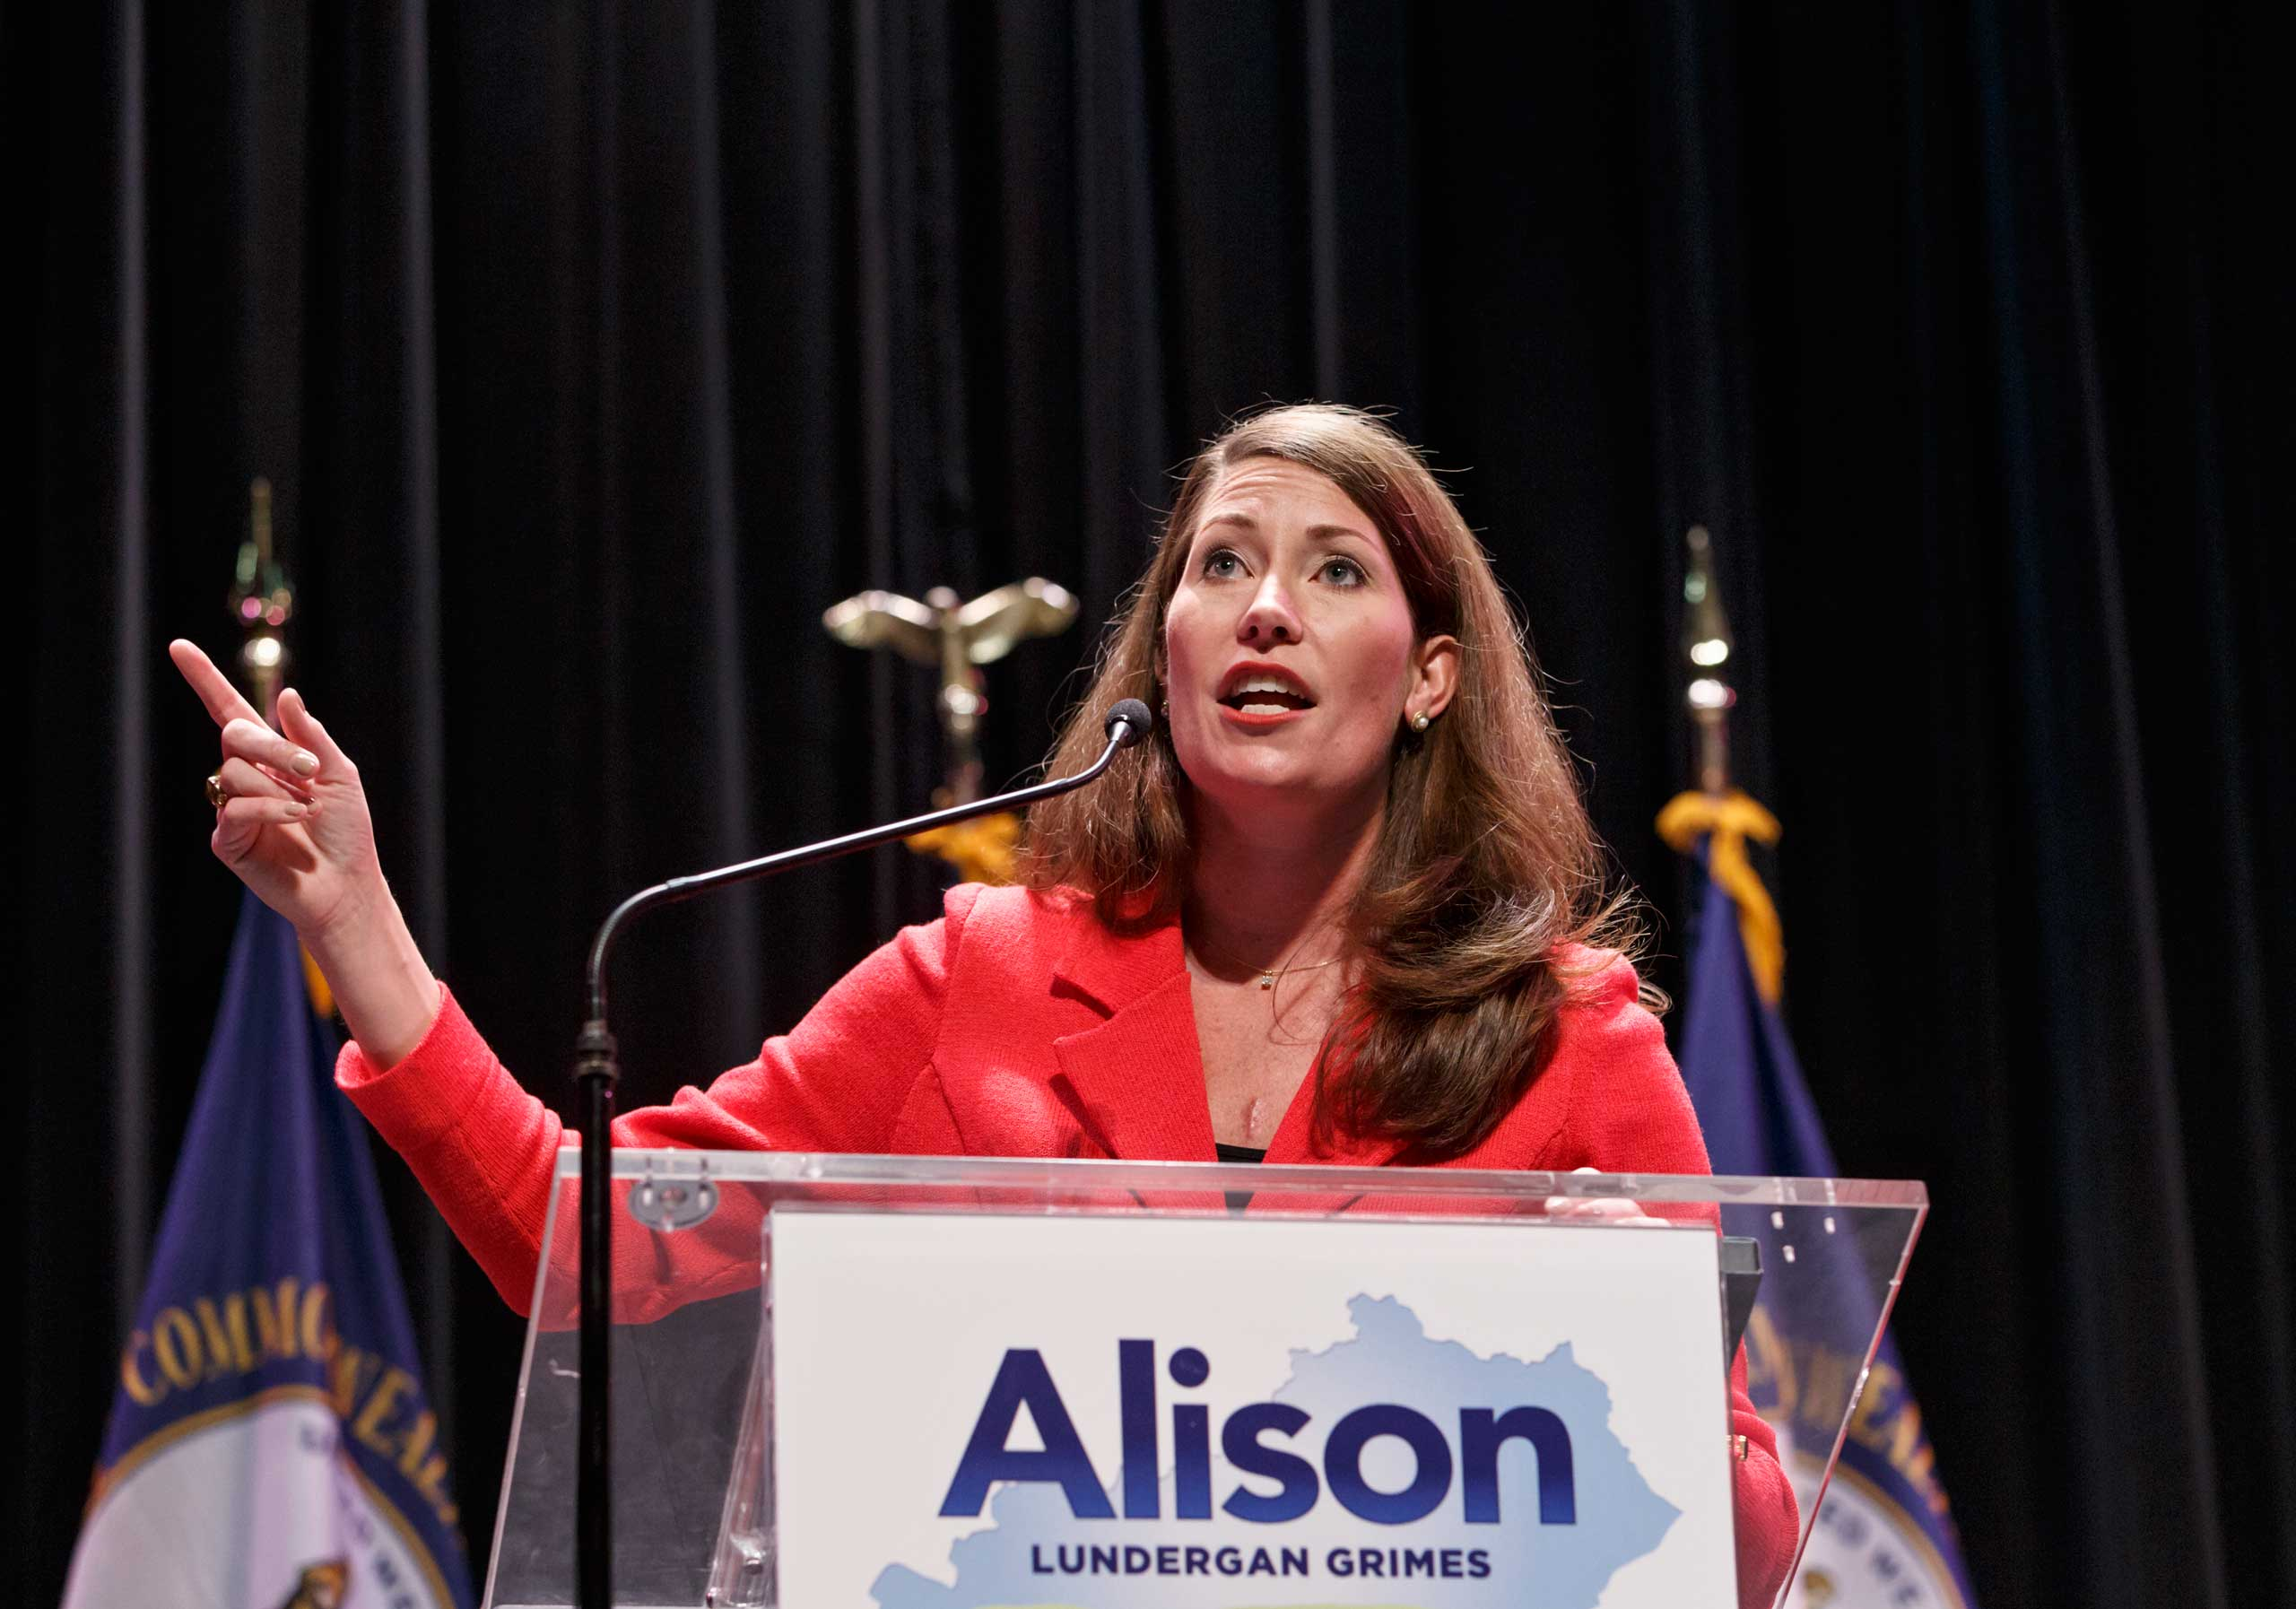 Democratic candidate Alison Lundergan Grimes at a campaign rally in Lexington, Ky., at Transylvania University, Nov. 1, 2014.